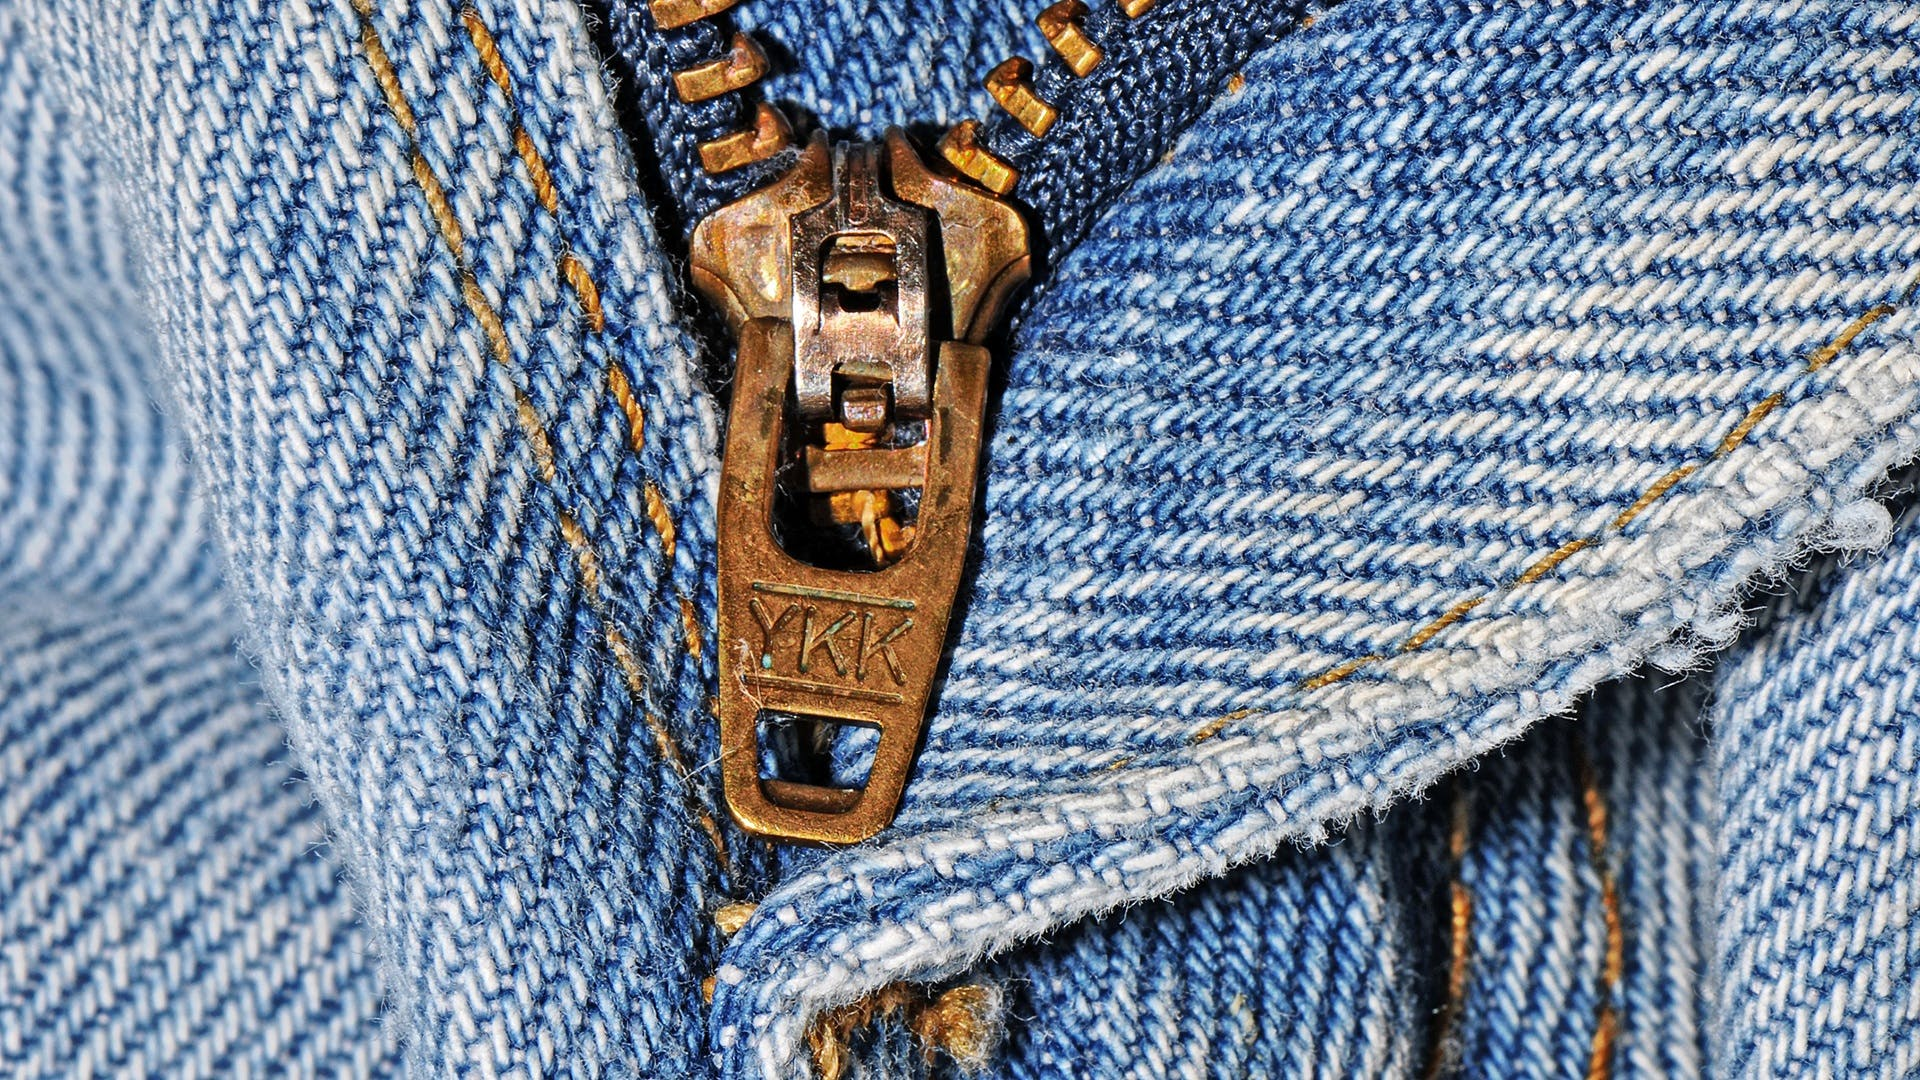 Free stock photo of blue, jeans, clothes, pants